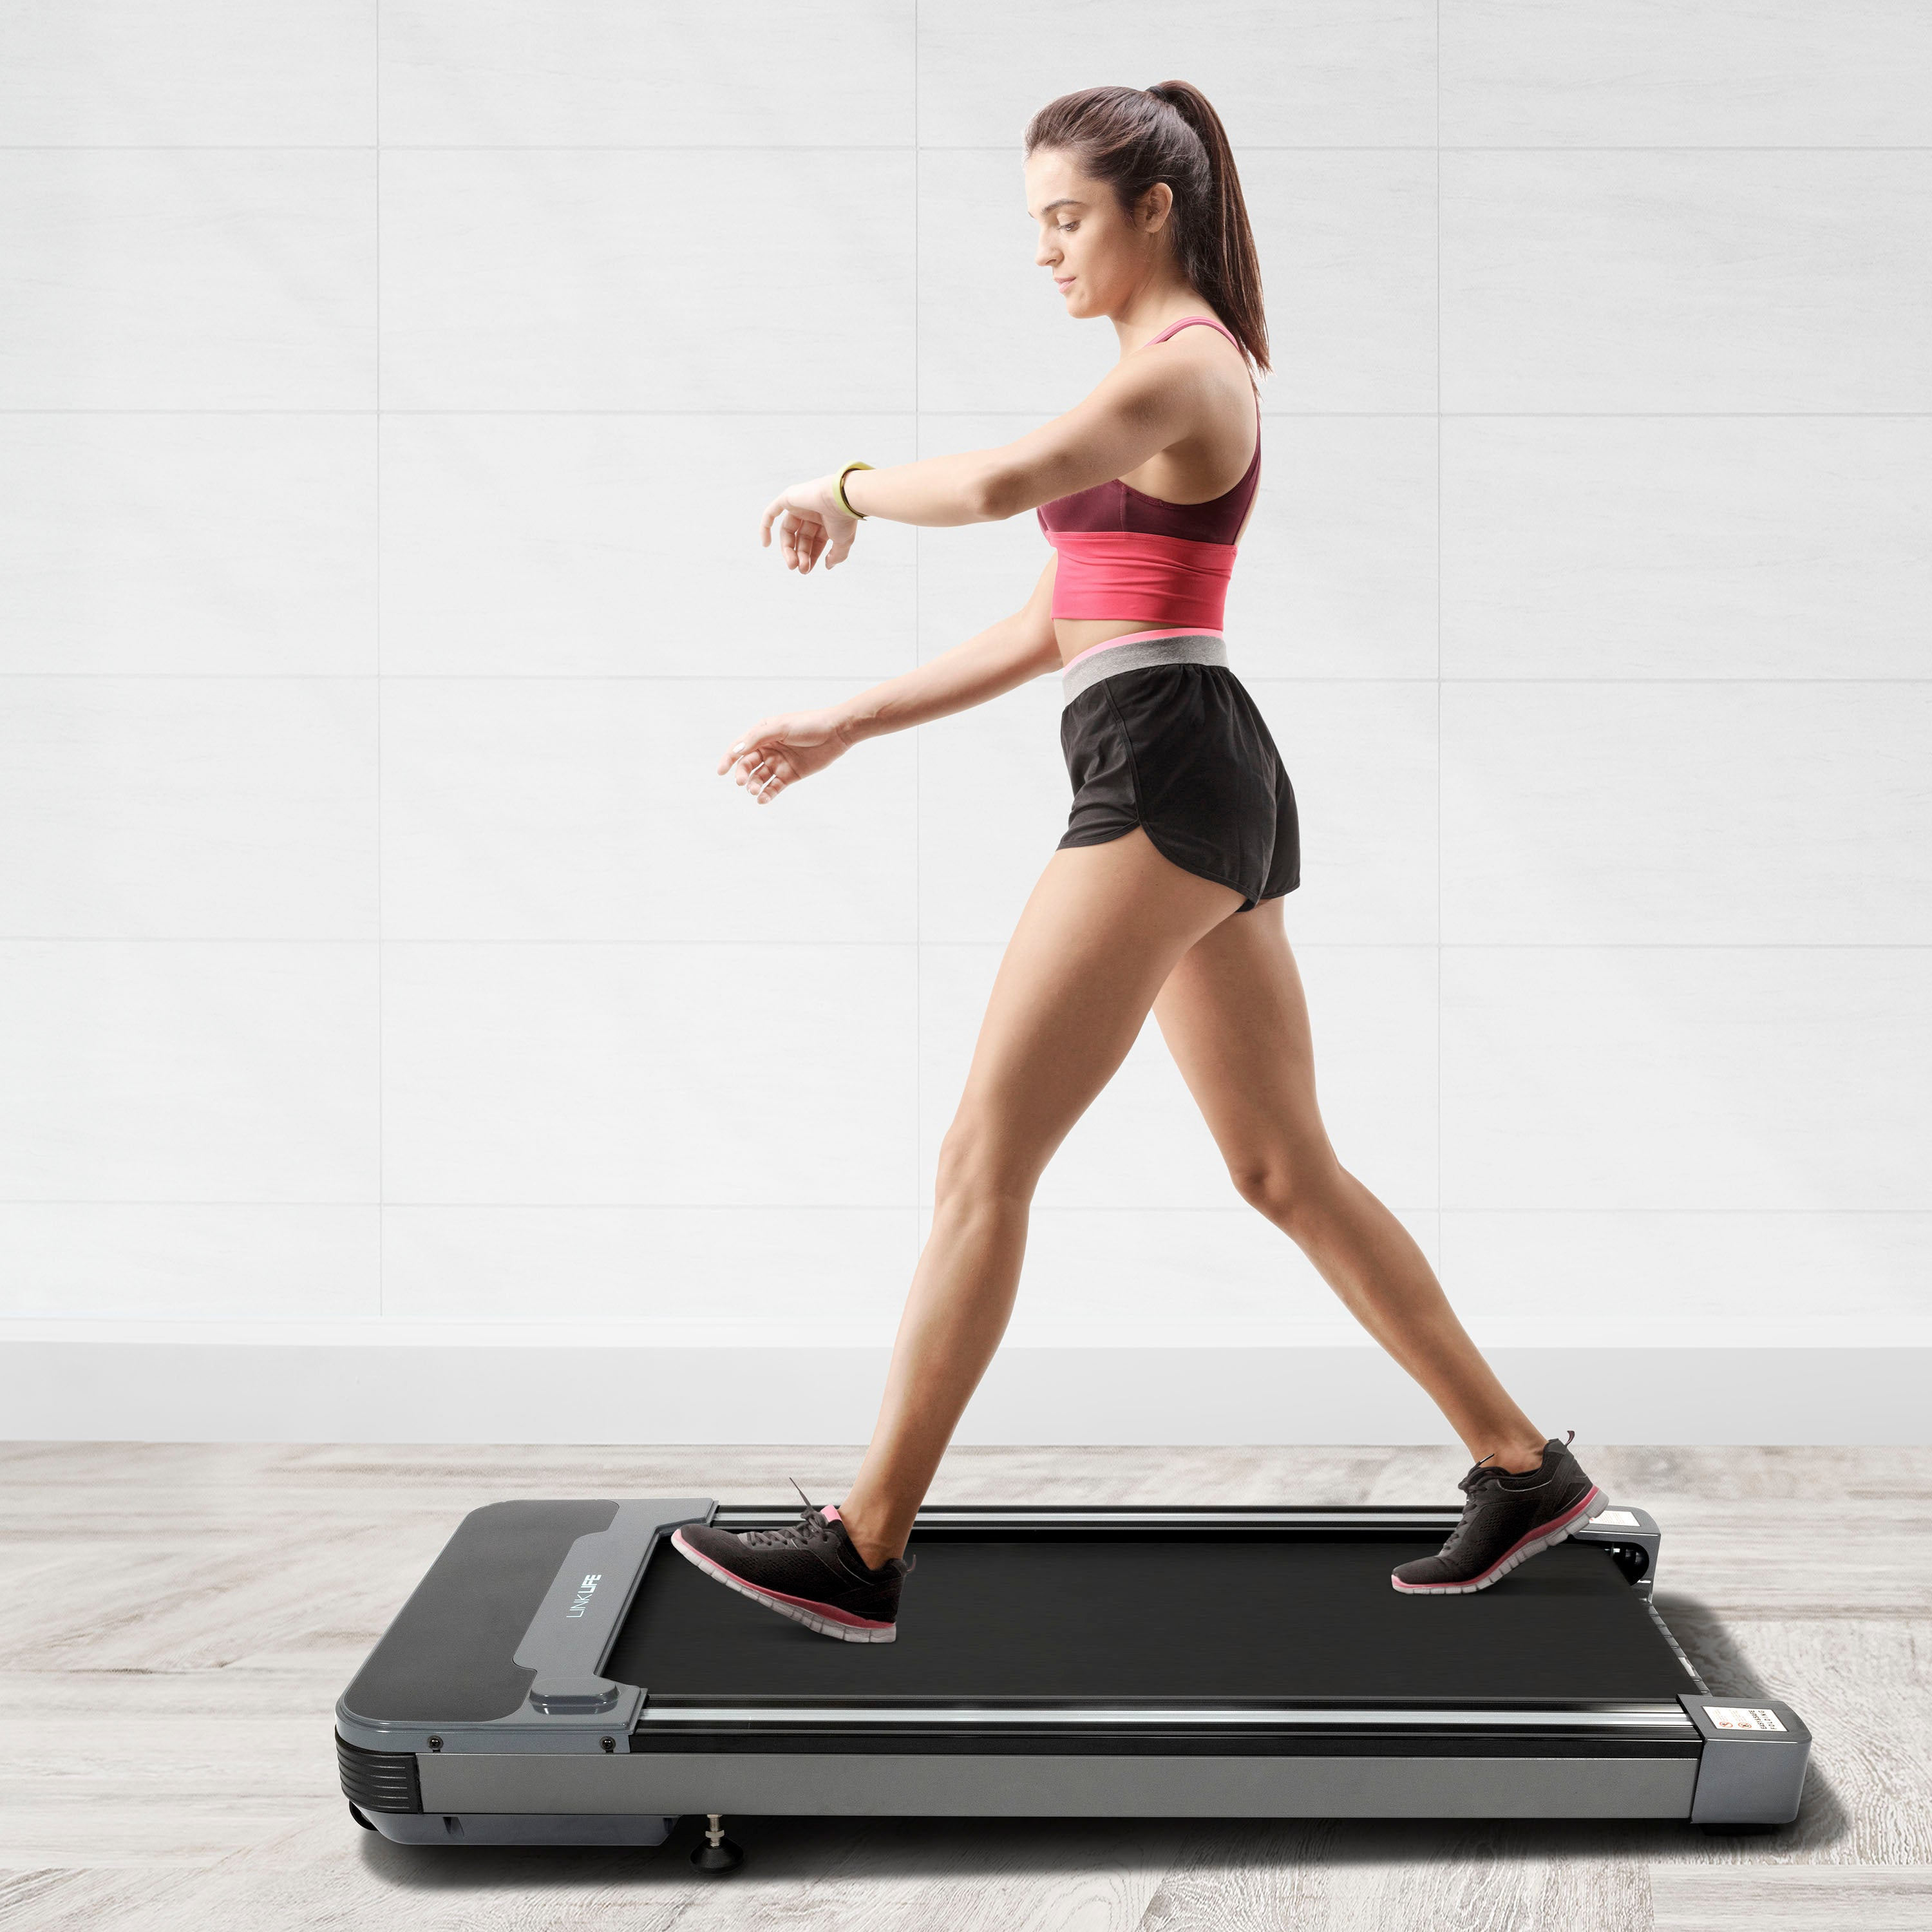 An image of a girl walking on the treadmill.